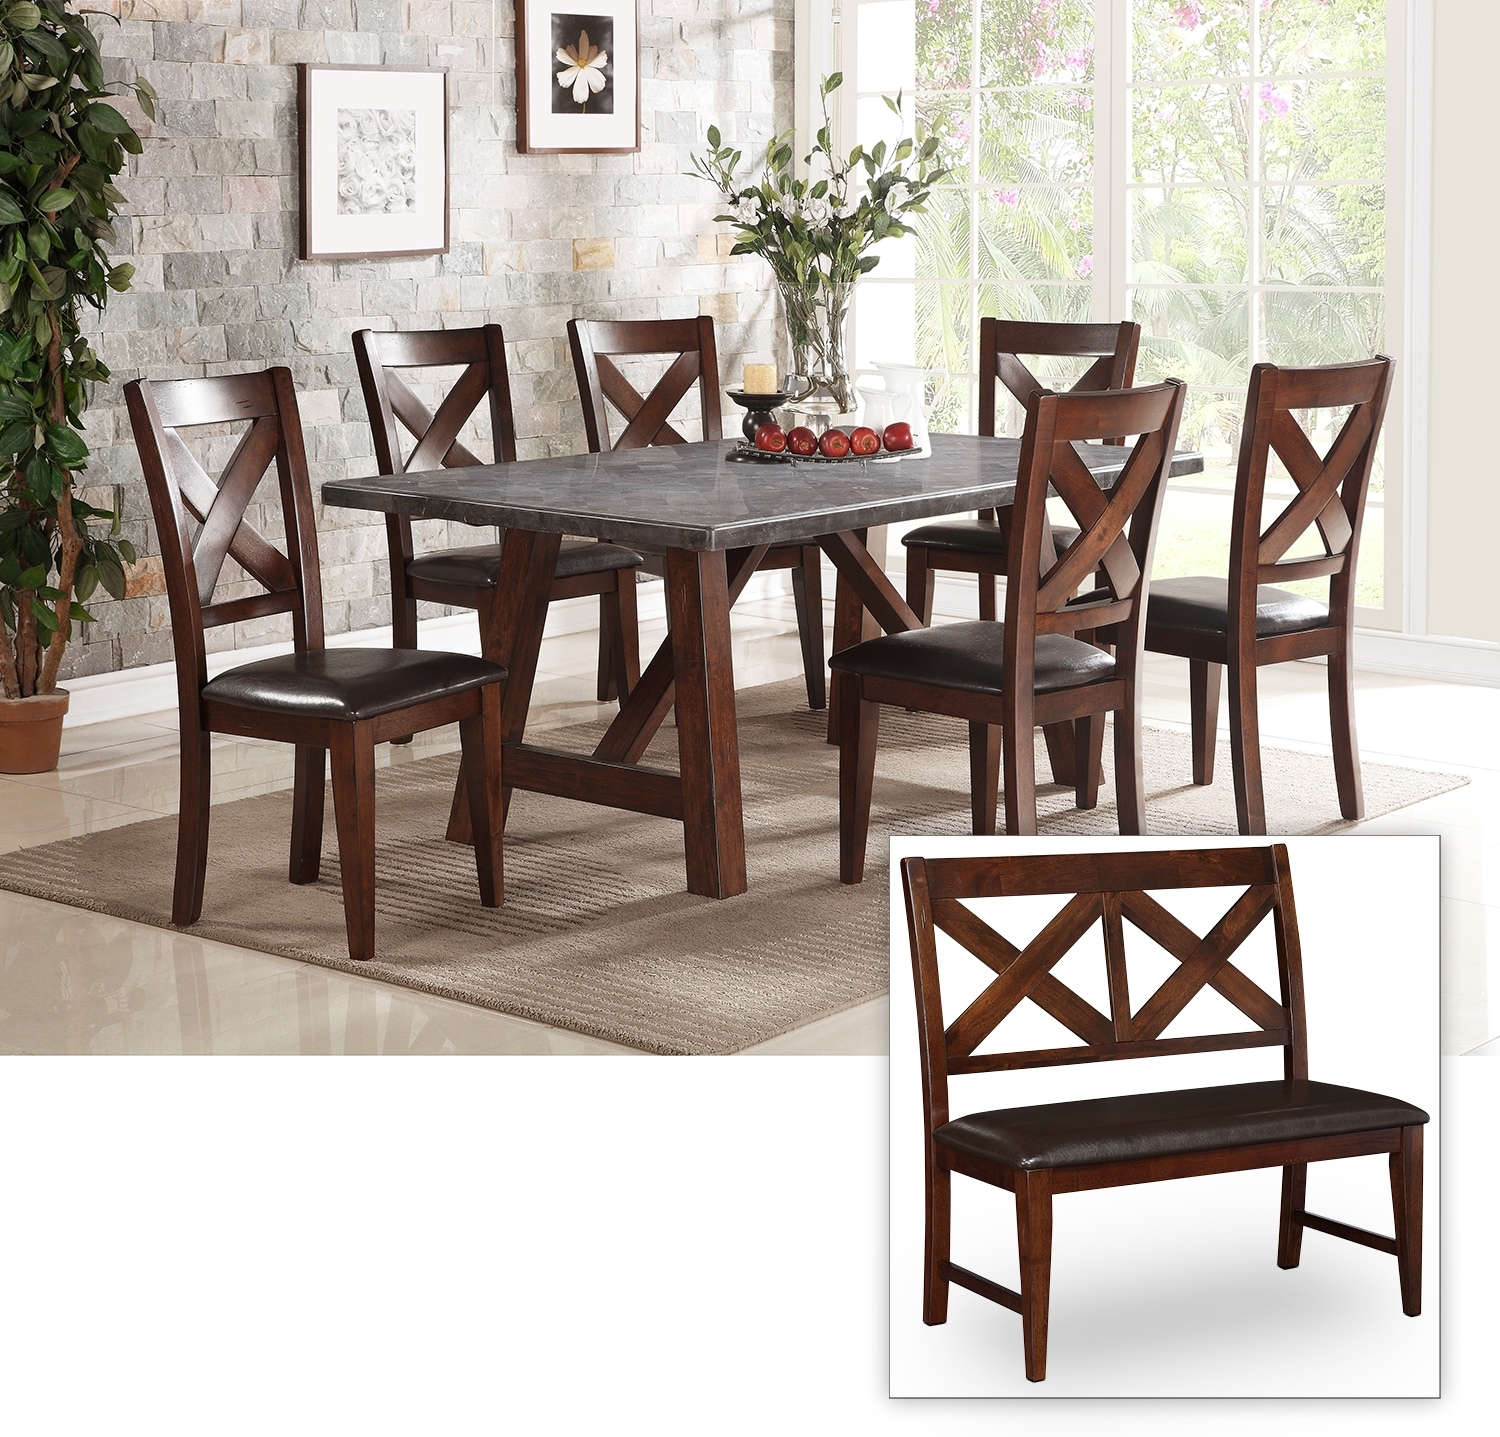 Dining Room Furniture - Bluestone 6-Piece Dining Package